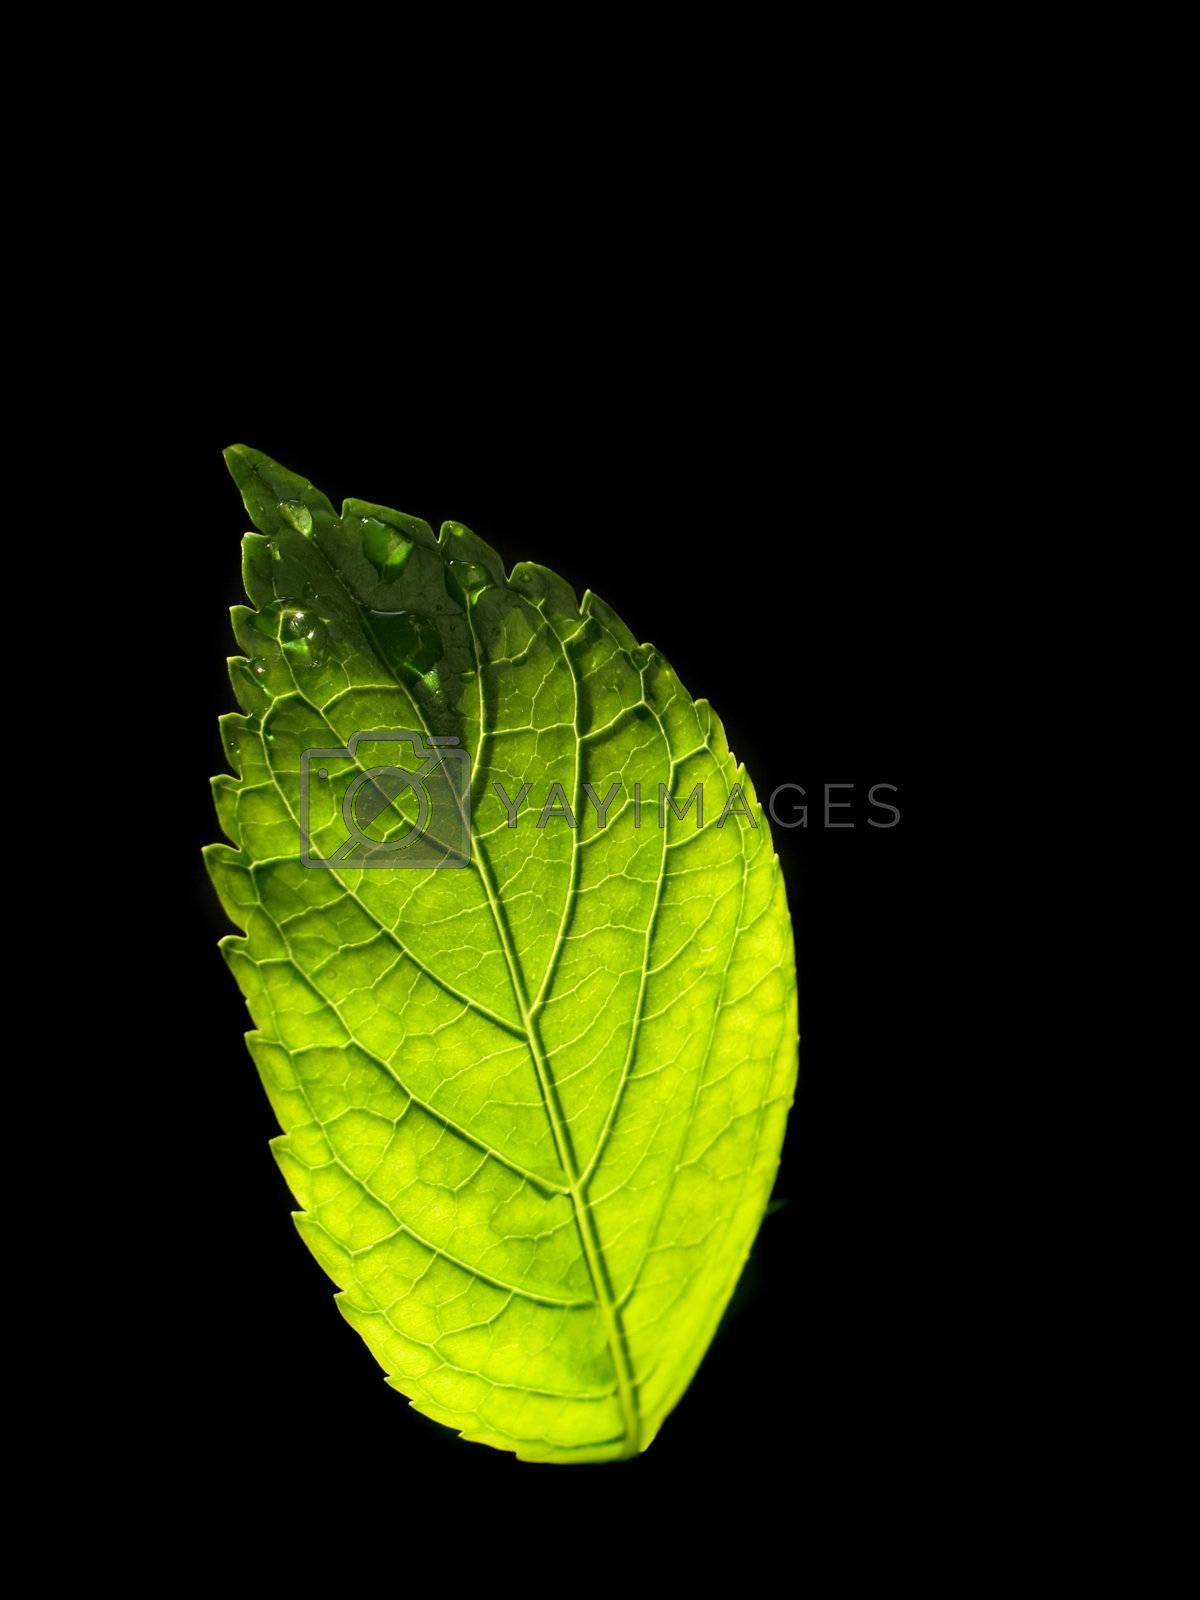 Royalty free image of Green leaf on black background  by Baltus